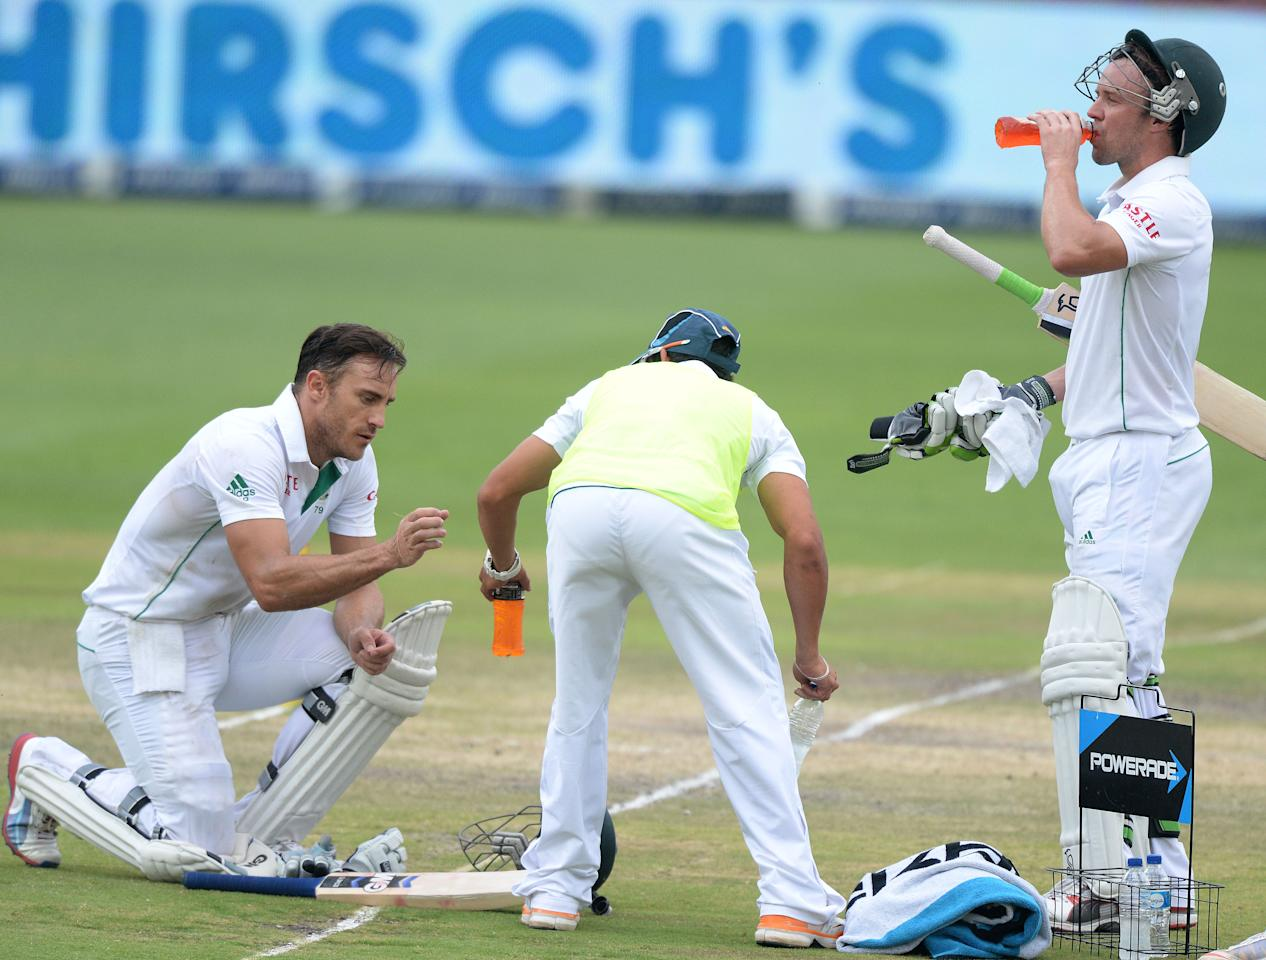 JOHANNESBURG, SOUTH AFRICA - DECEMBER 22: Faf du Plessis and AB de Villiers during day 5 of the 1st Test match between South Africa and India at Bidvest Wanderers Stadium on December 22, 2013 in Johannesburg, South Africa. (Photo by Duif du Toit/Gallo Images)